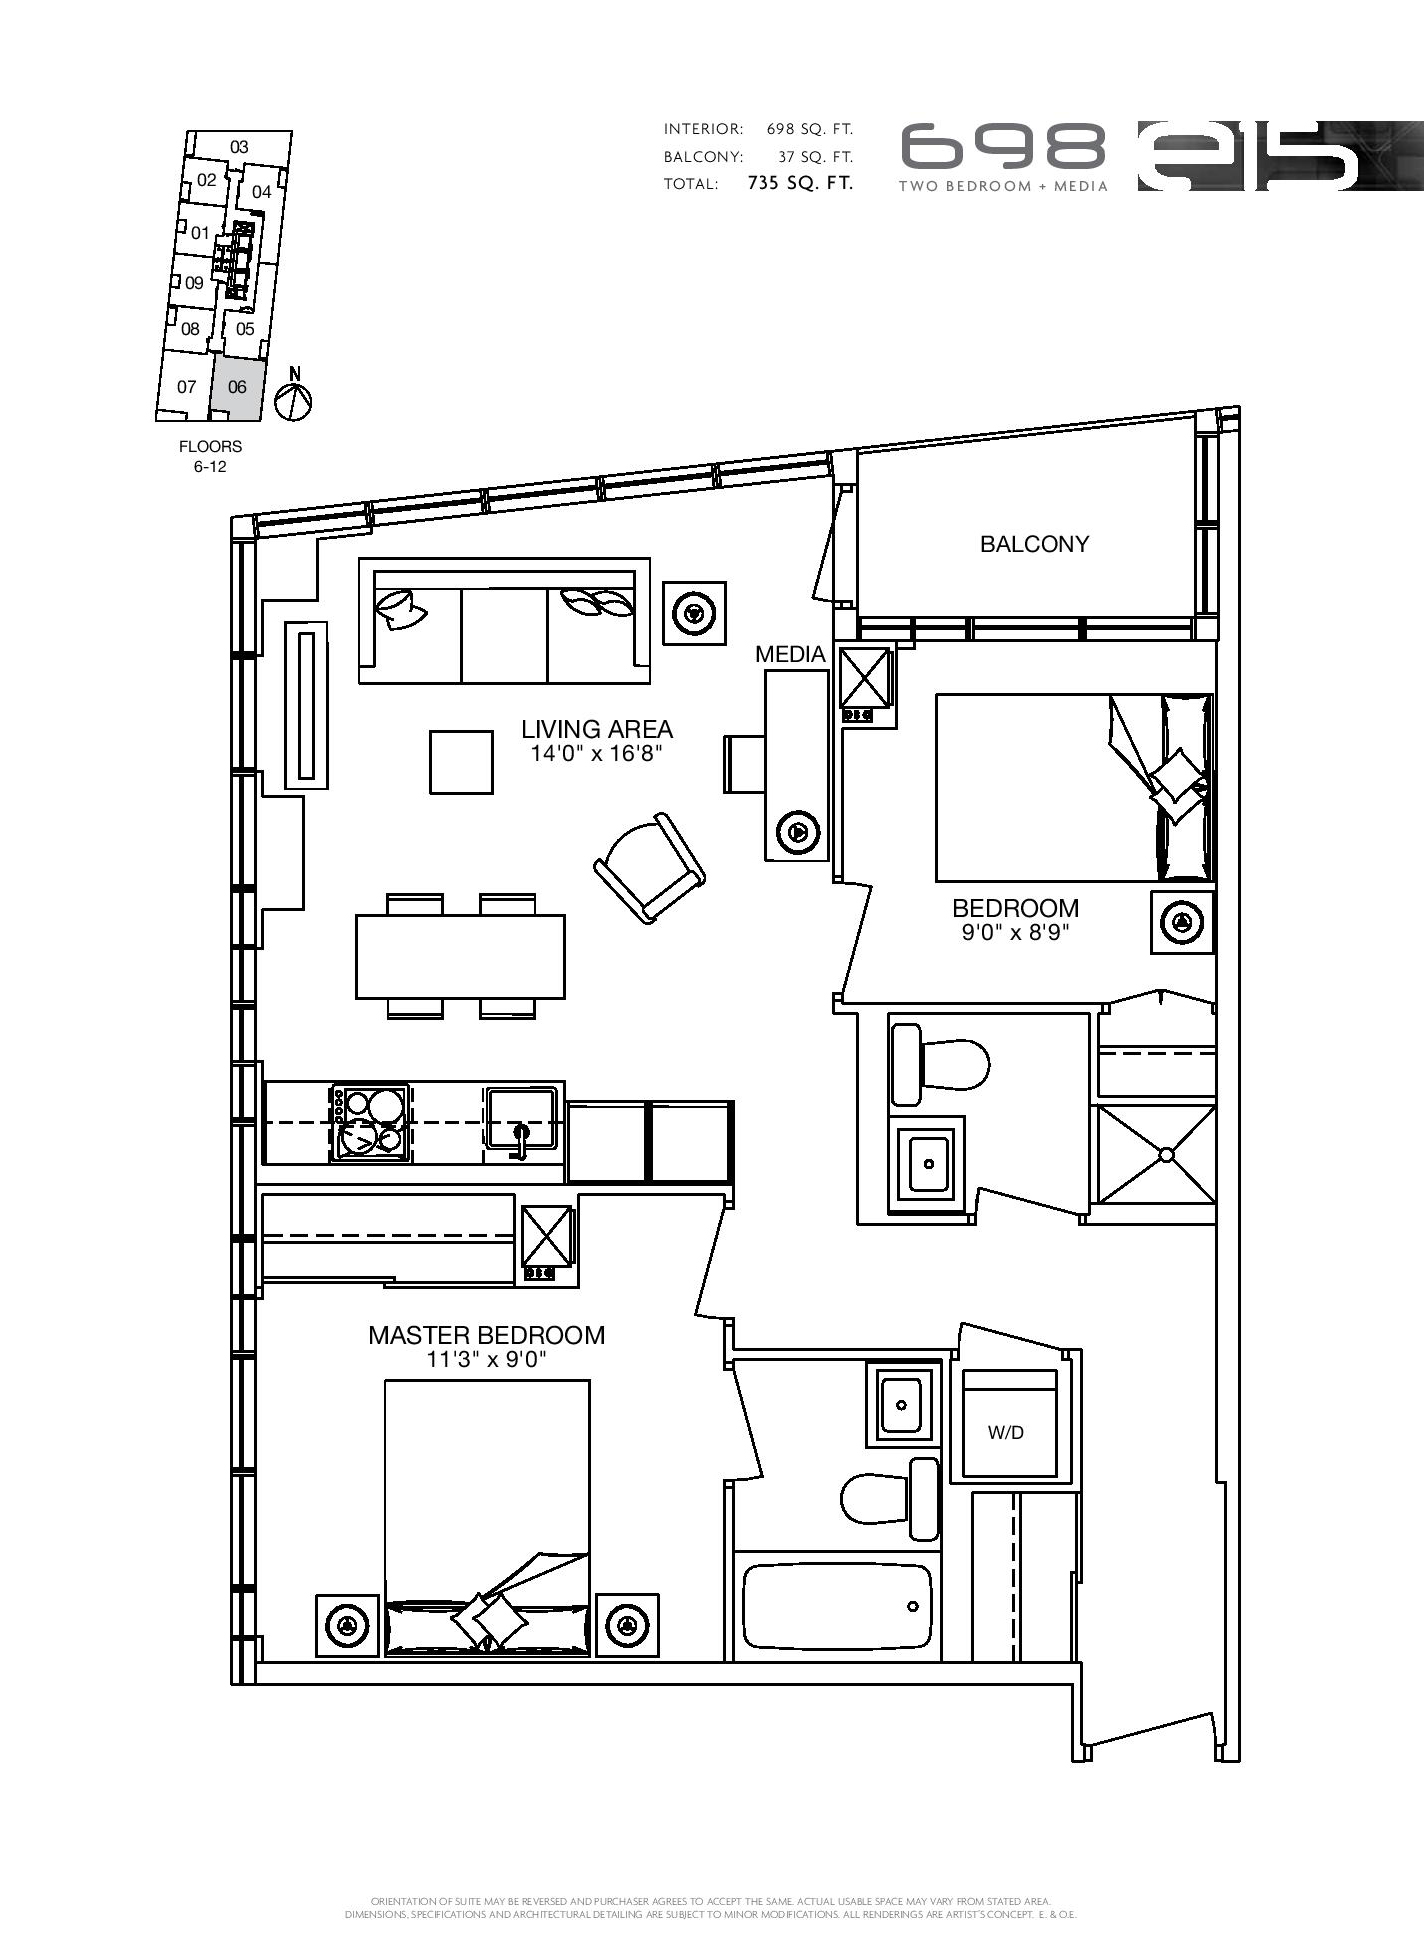 E CONDOS FOR SALE - FLOORPLAN TWO BEDROOM